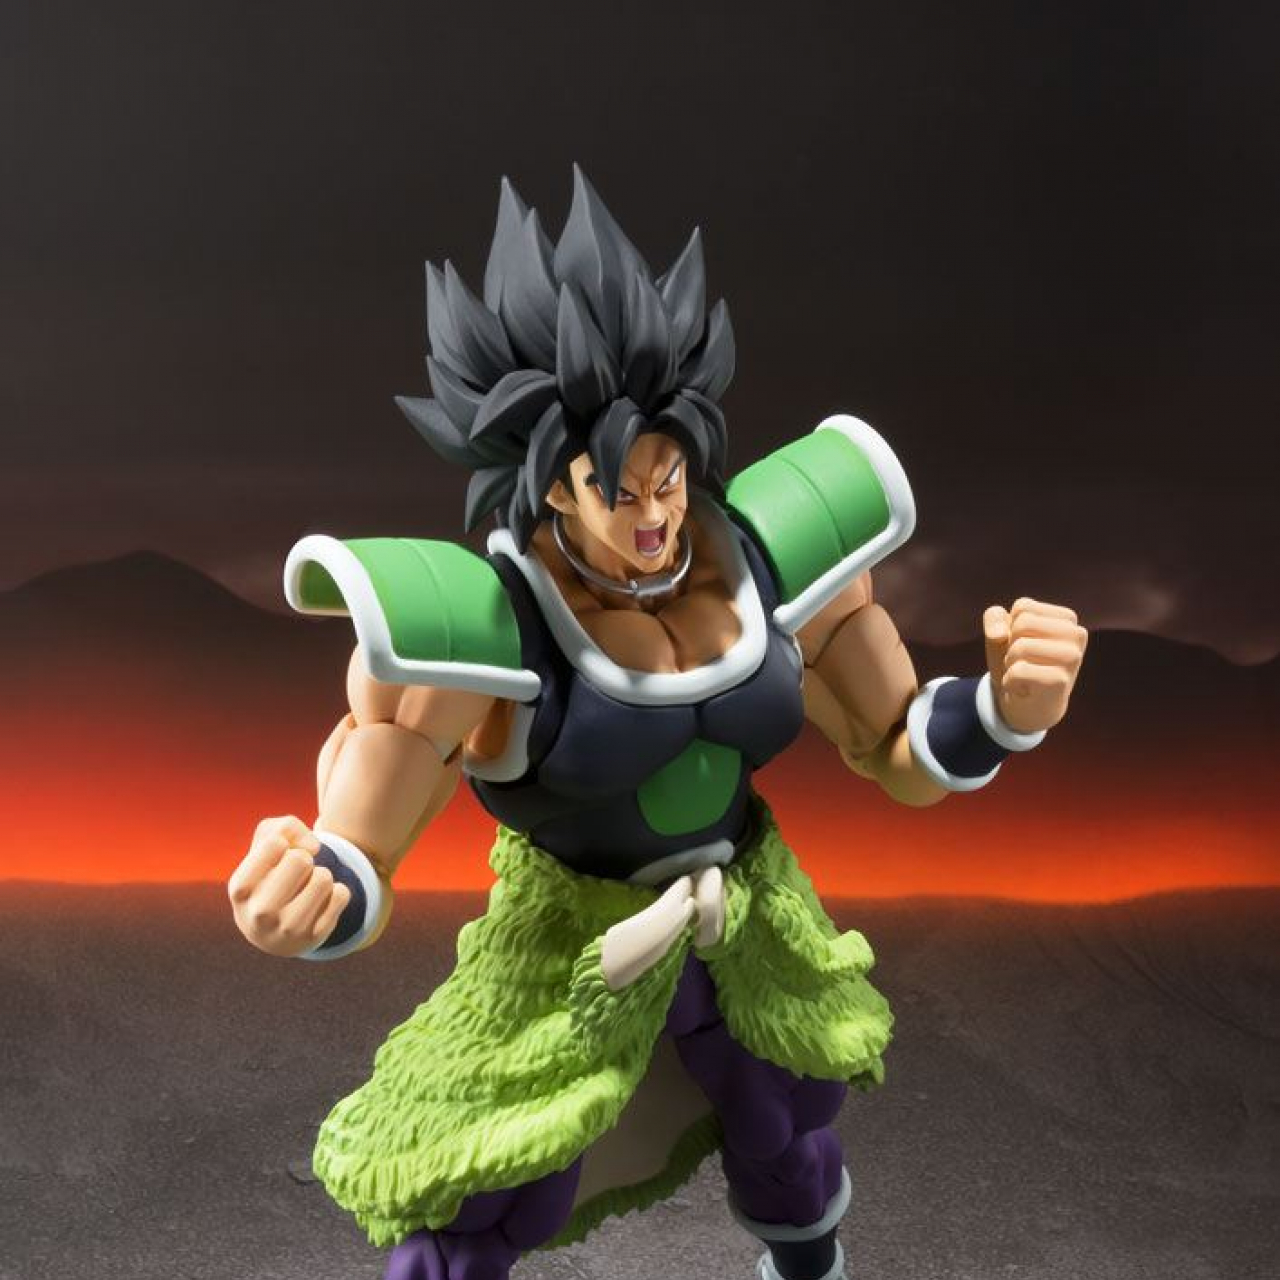 Dragonball Super Broly S.H. Figuarts Action Figure Broly 19 cm